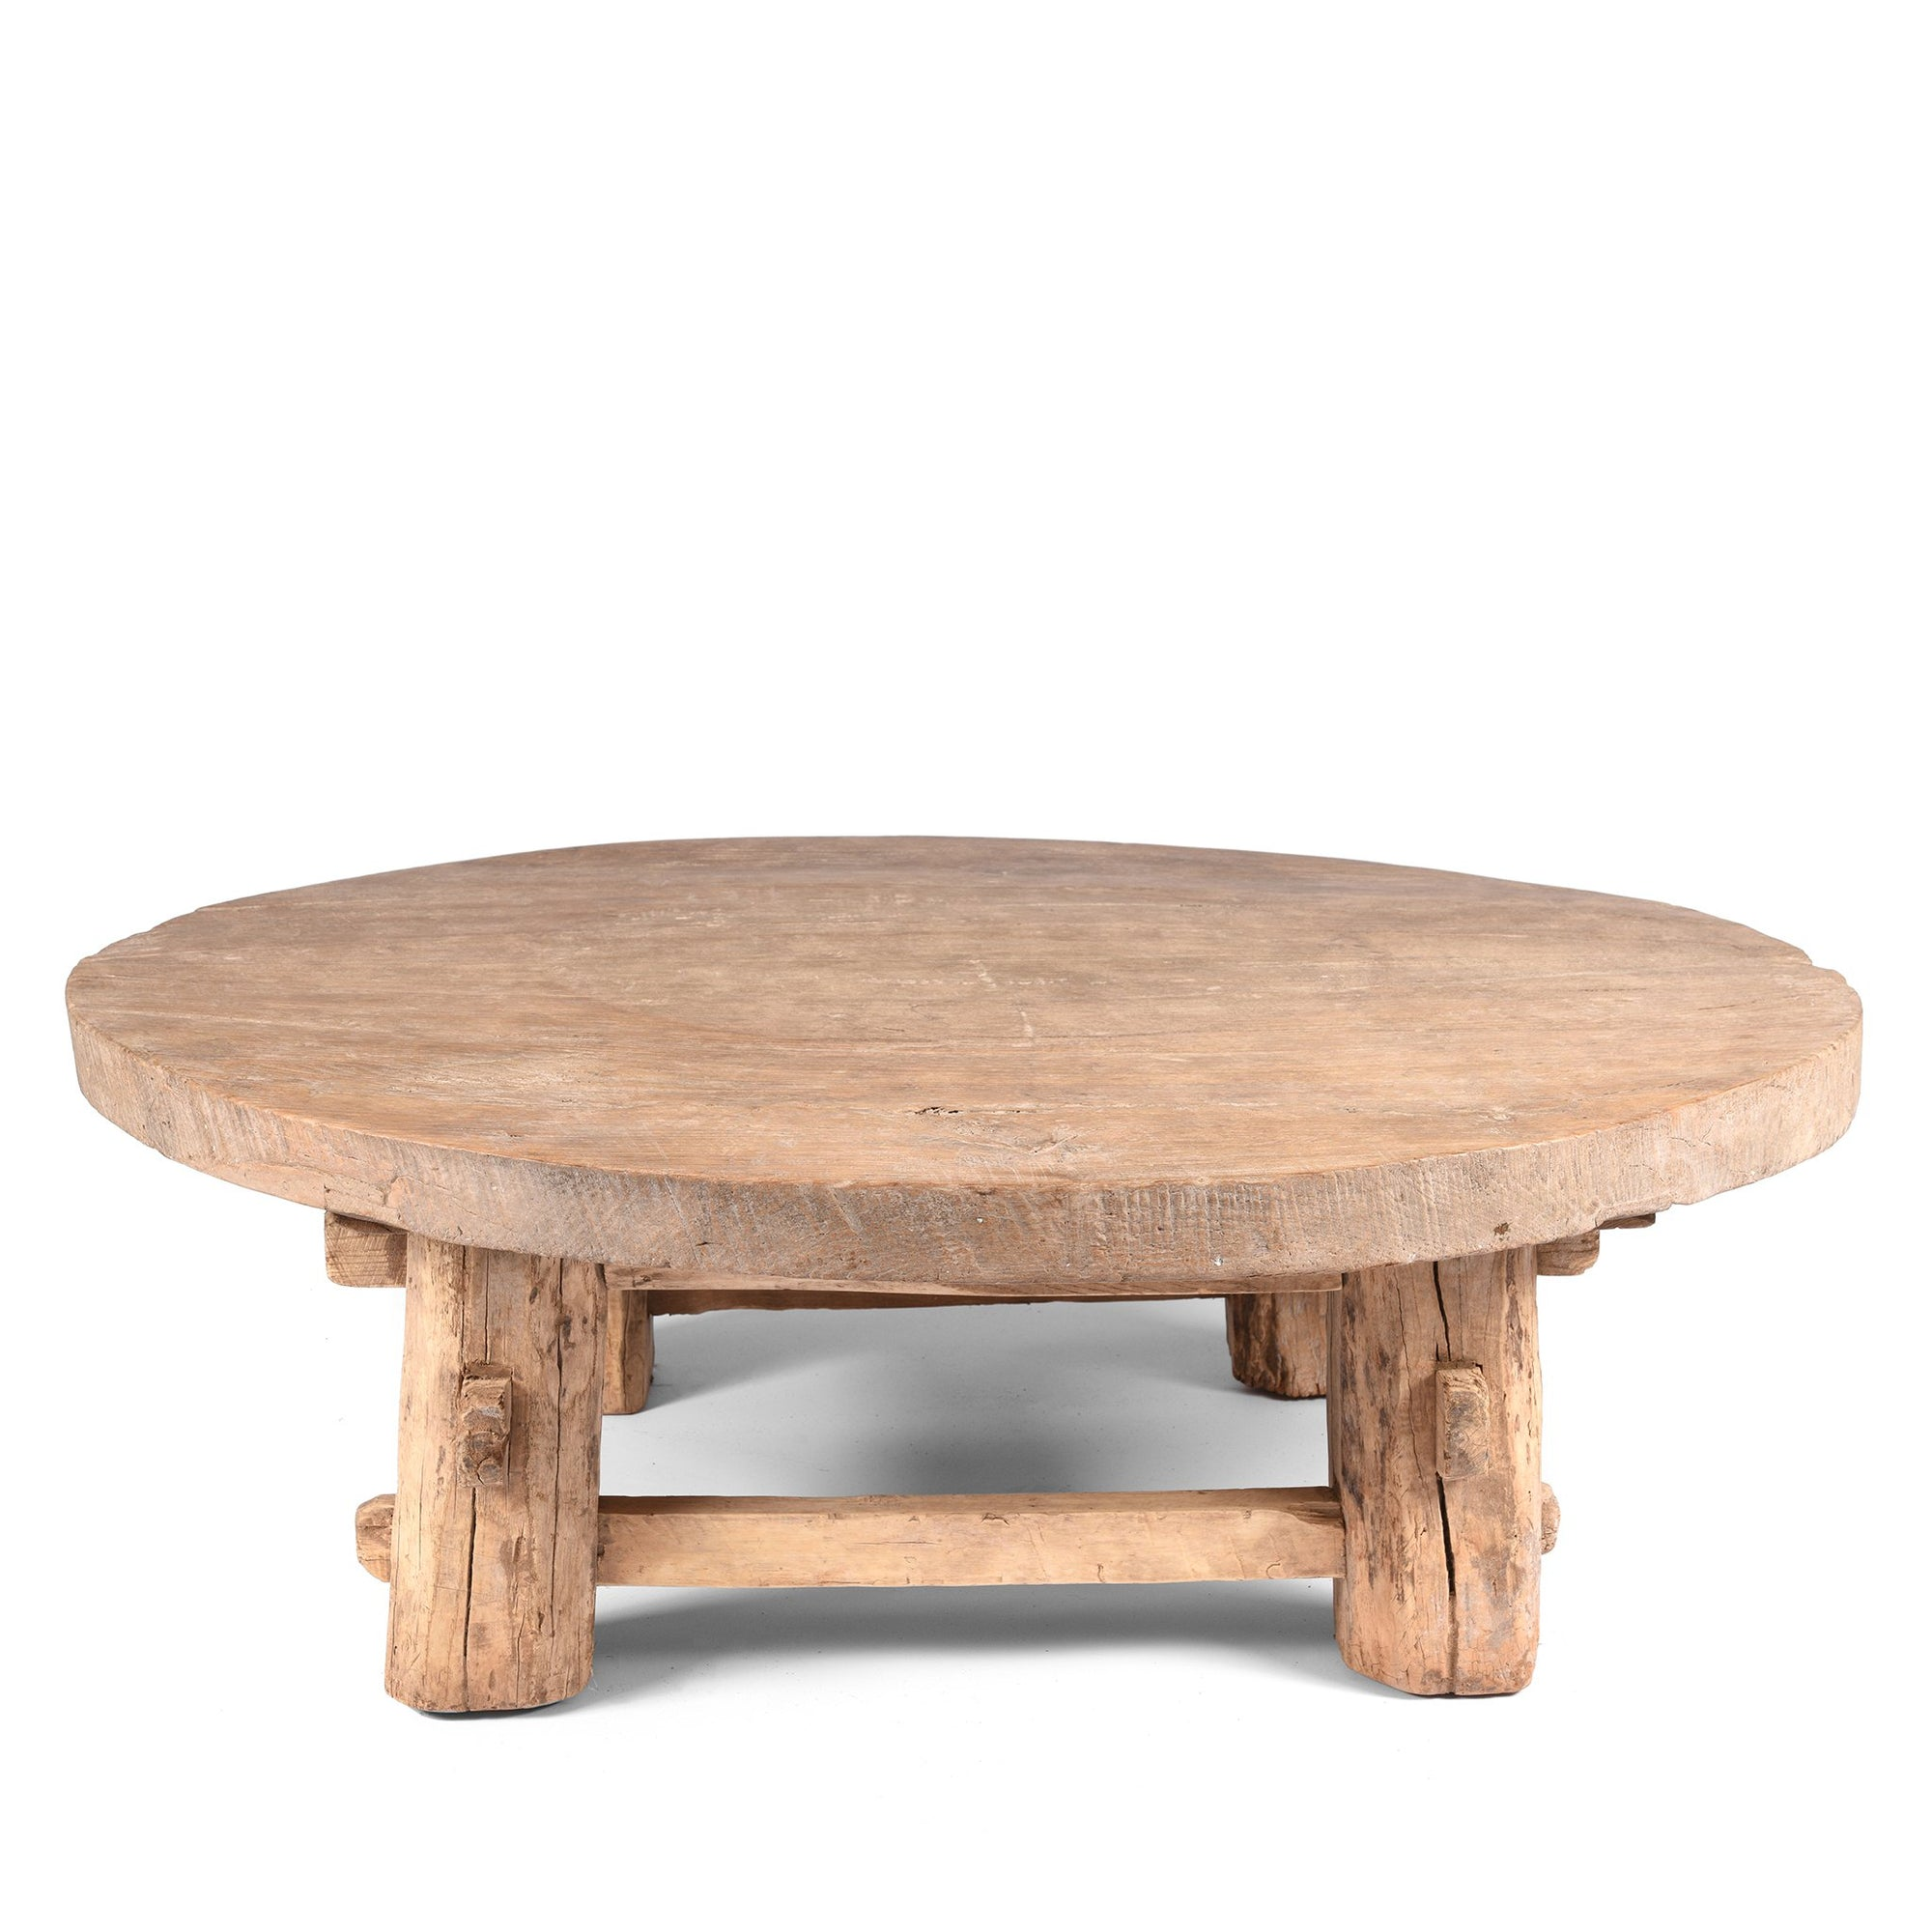 Round Elm Farmers Table From Shanxi - Ca 100 Yrs Old | Indigo Antiques